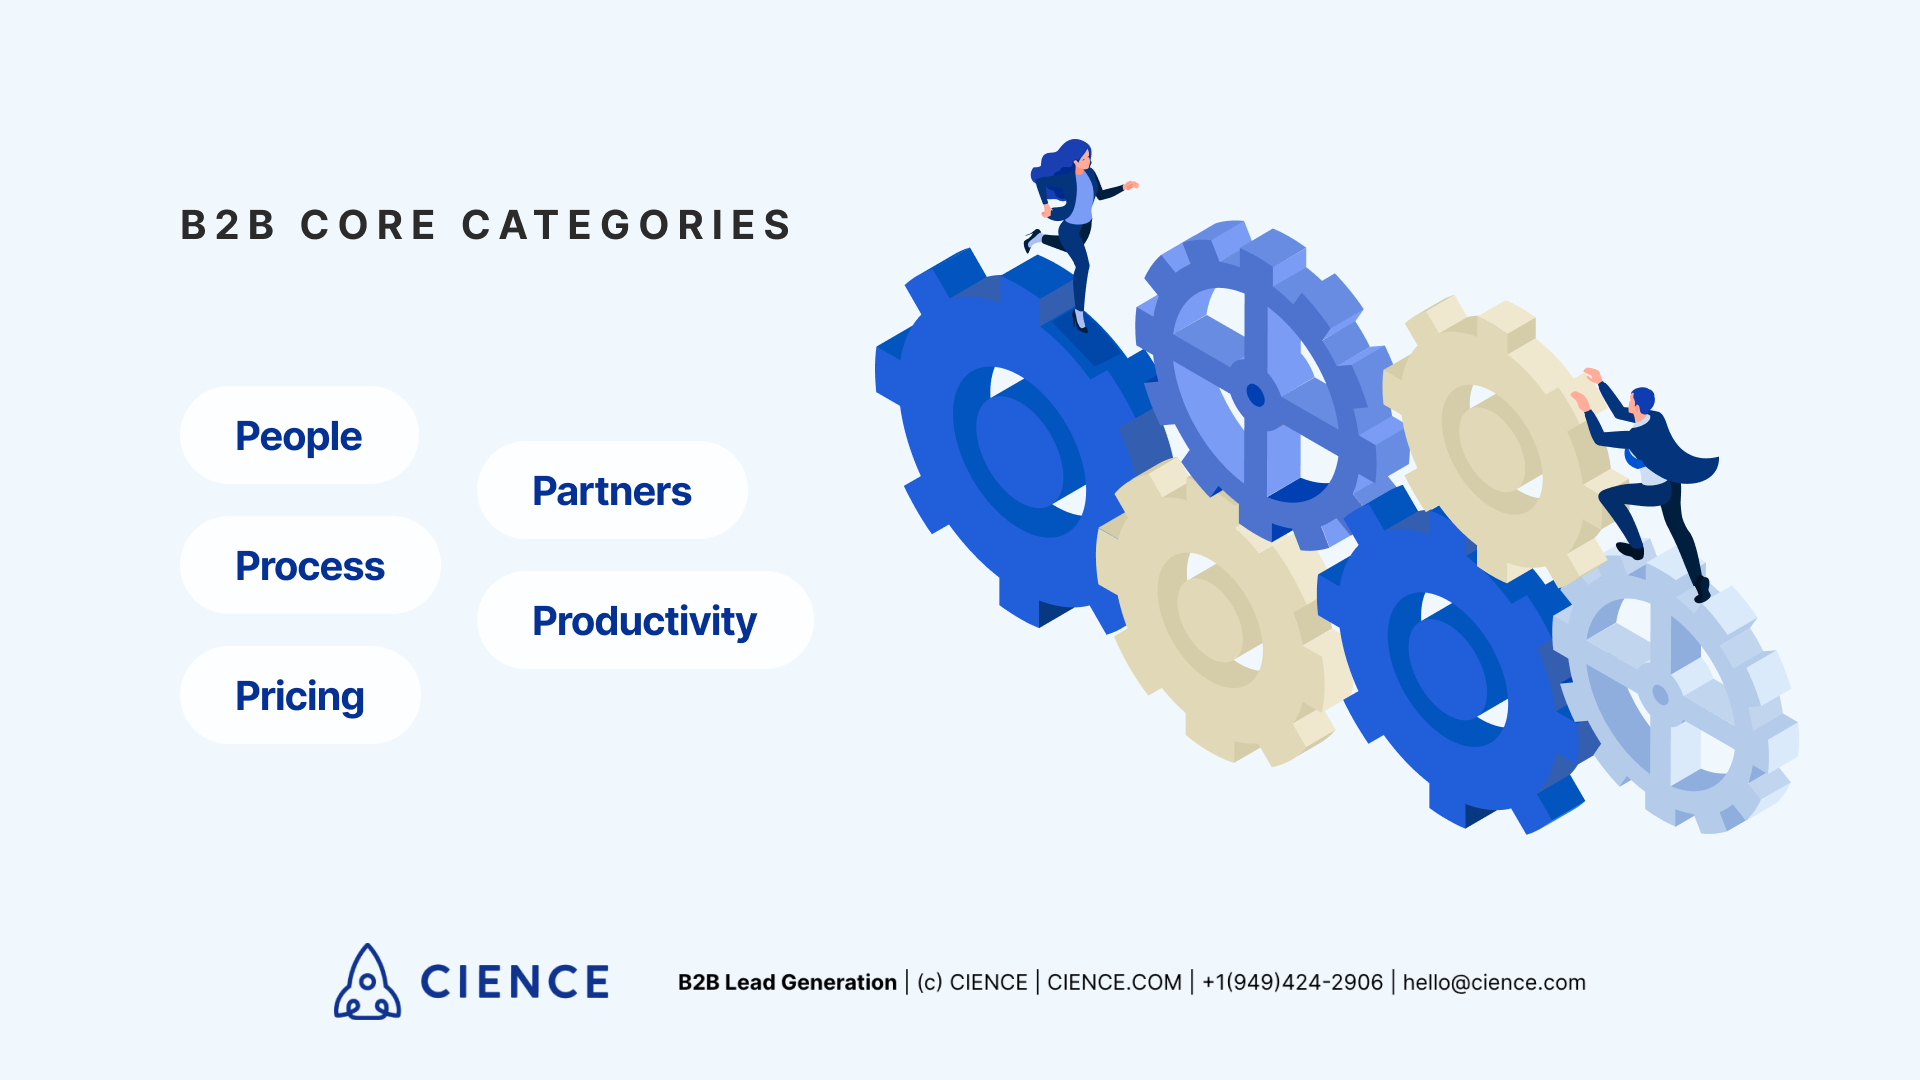 B2B Core Categories: People, Process, Pricing, Partners, Productivity